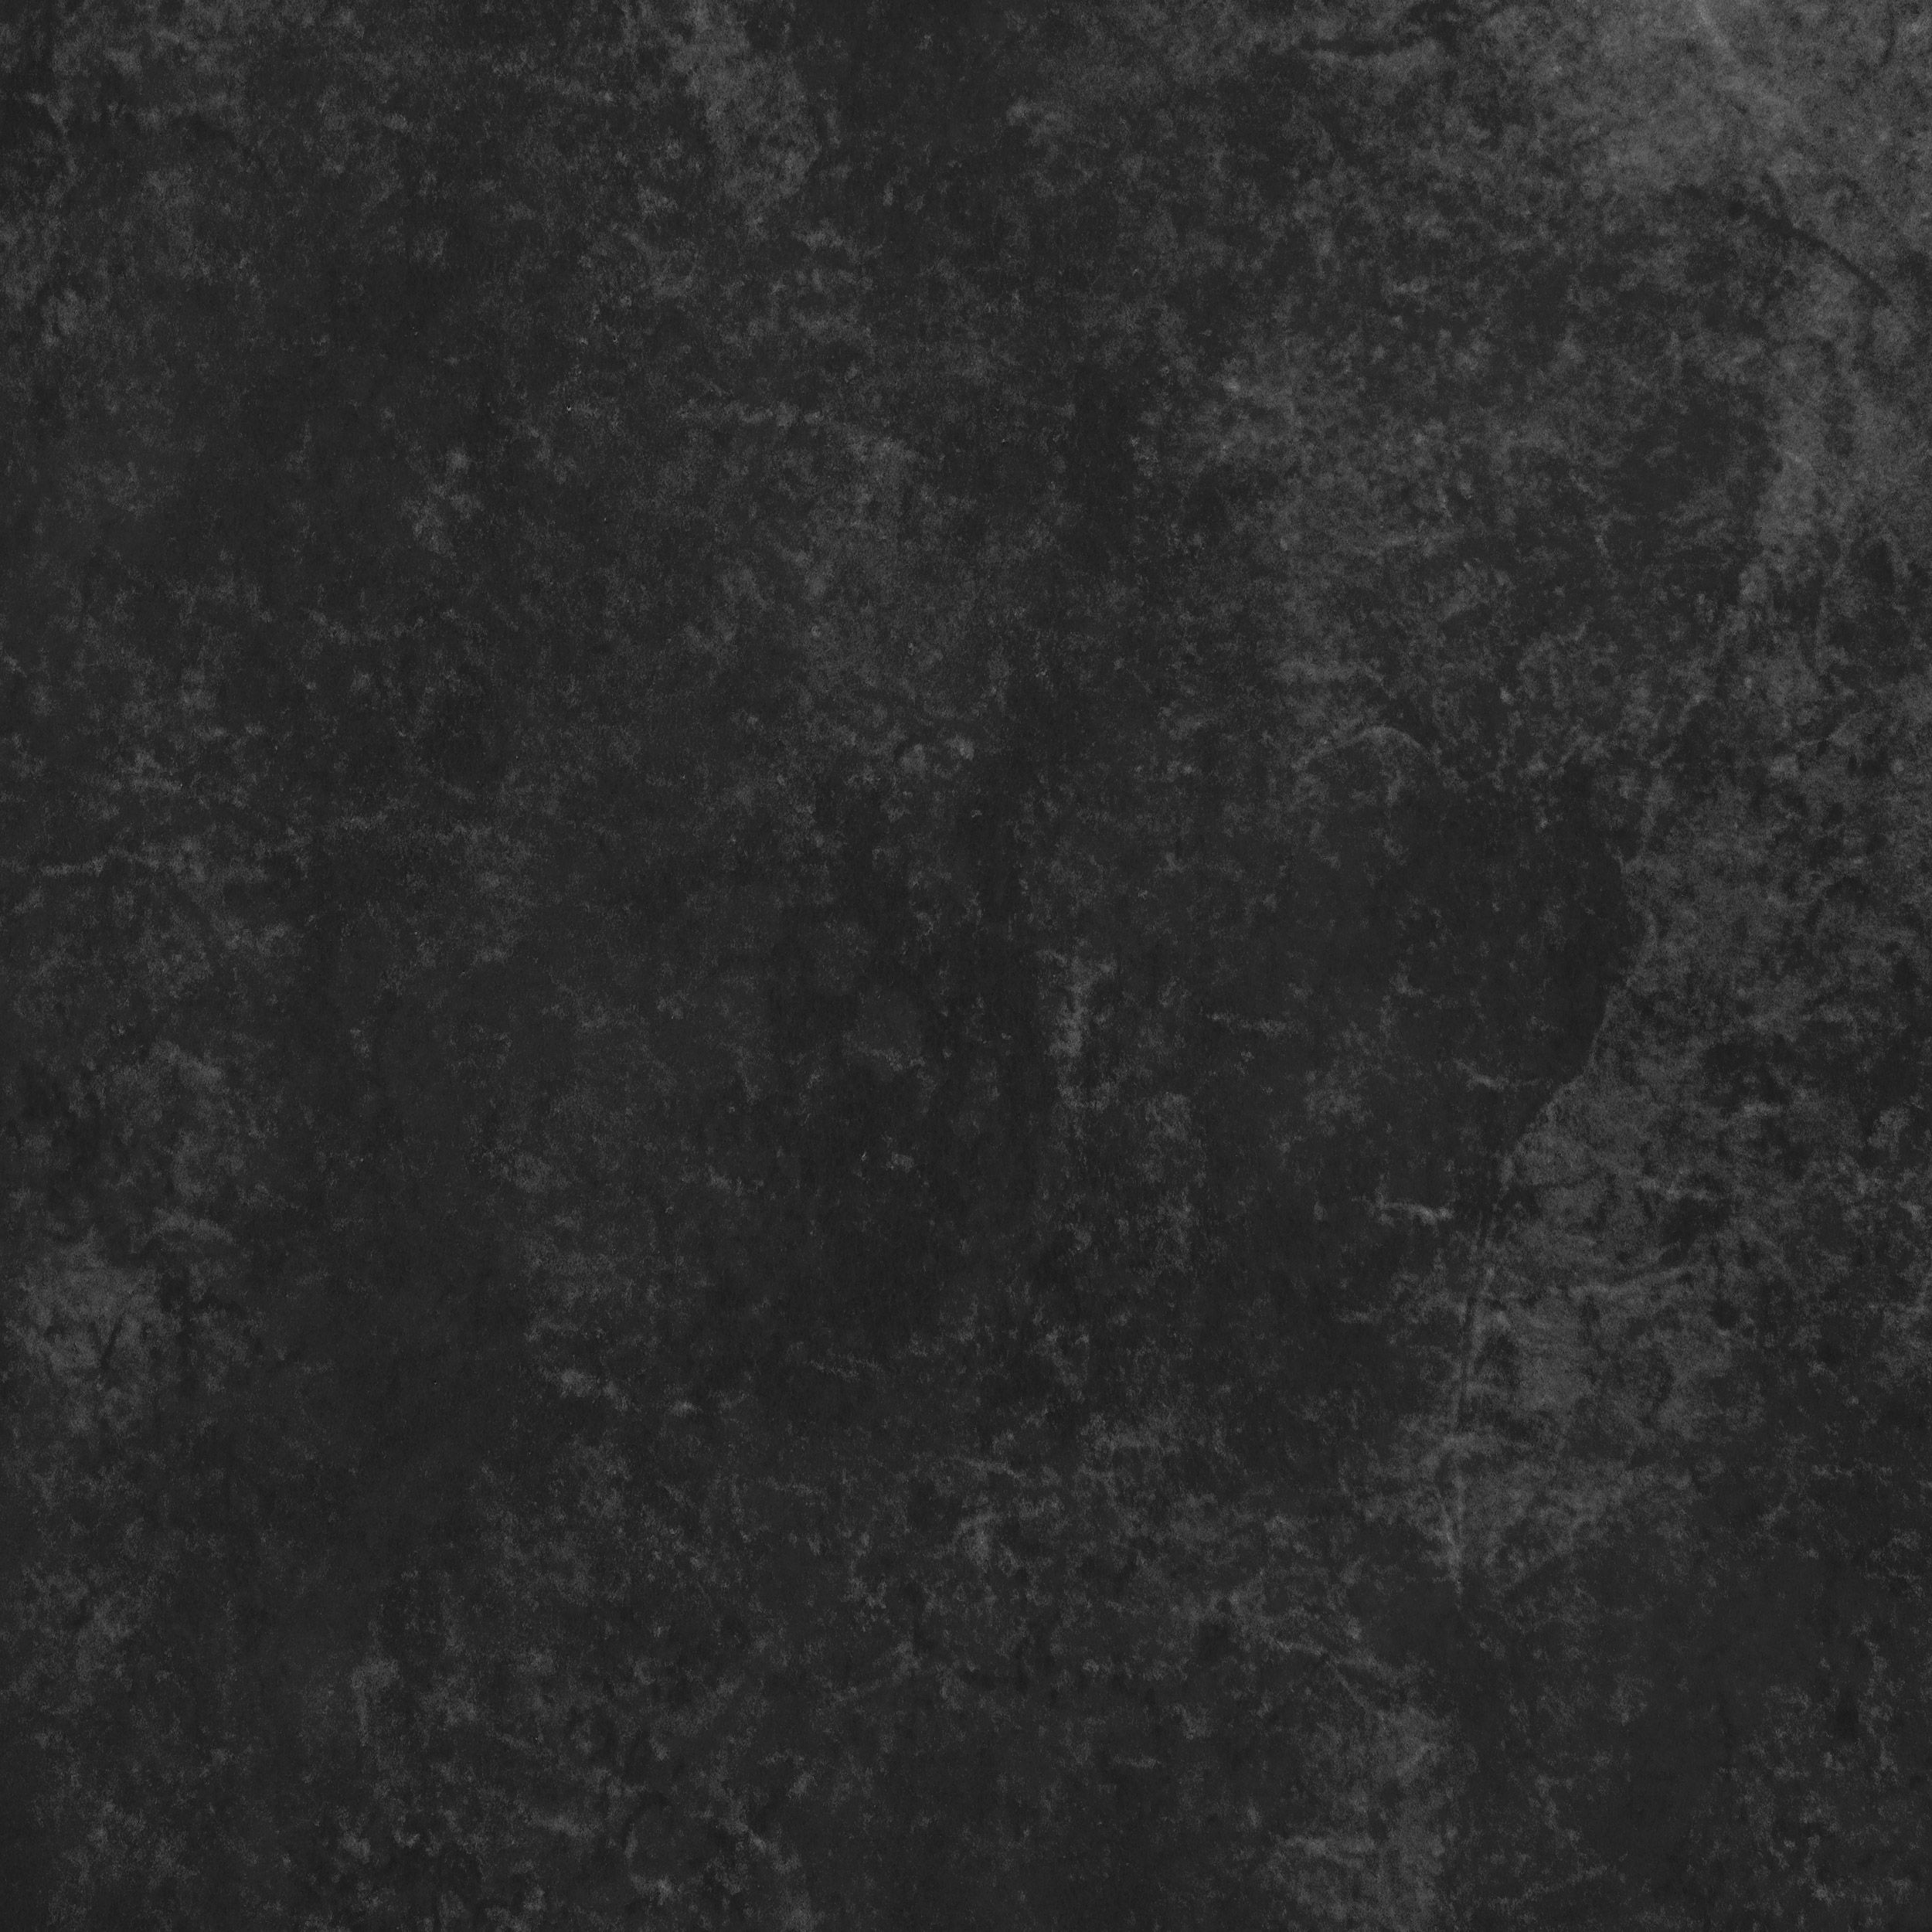 Charcoal Stained Concrete Textures Stained Concrete